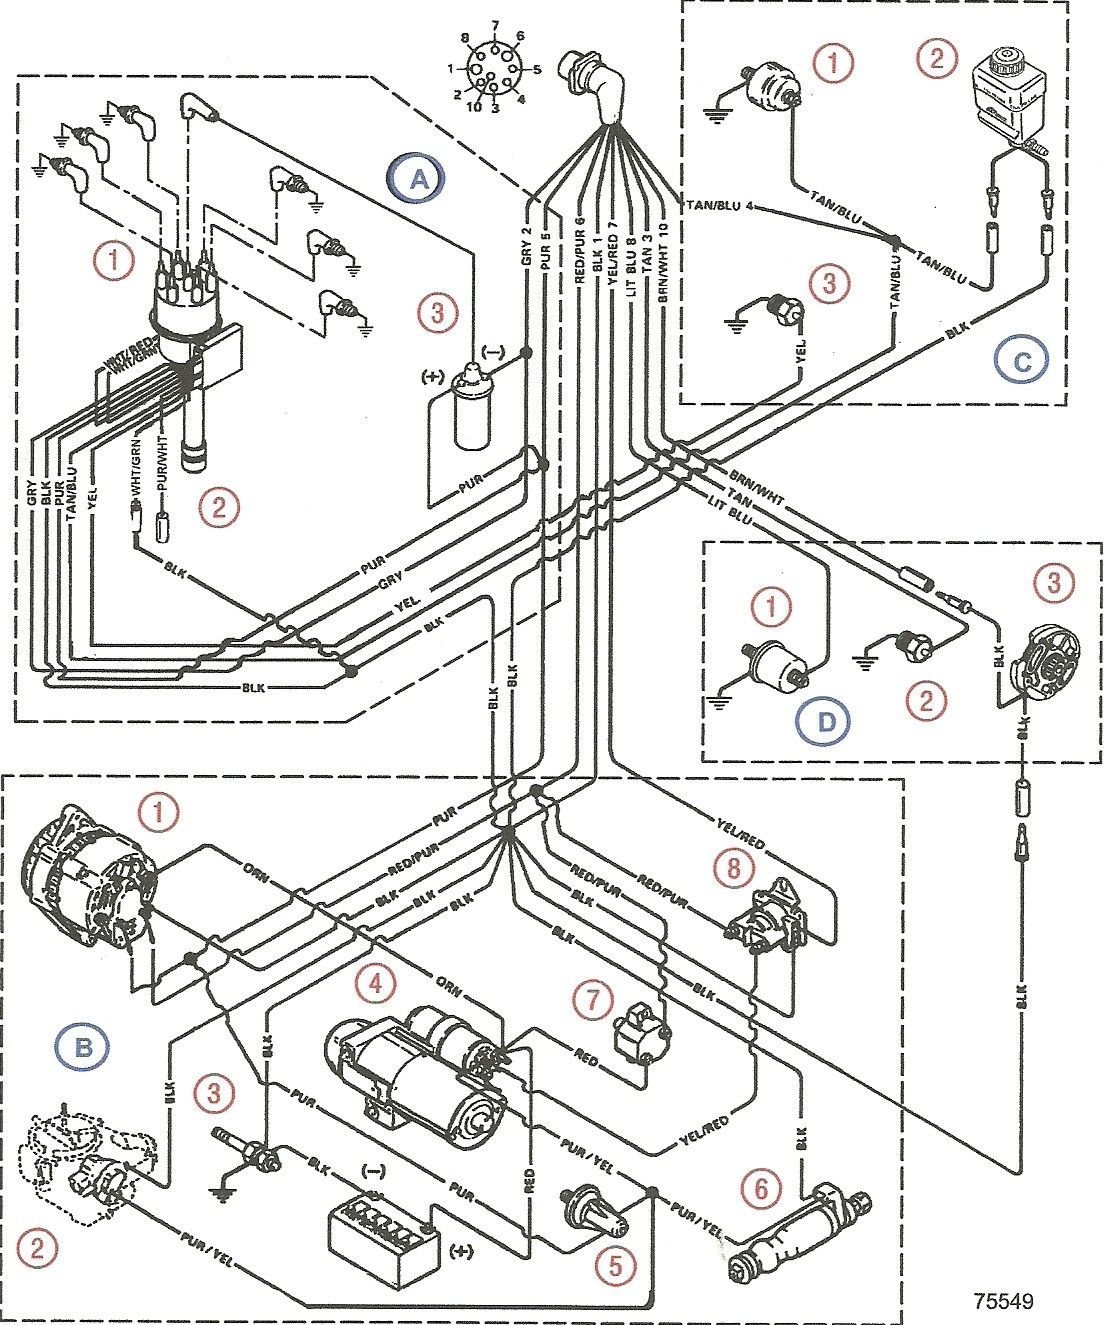 mercruiser 5.7 wiring diagram | lancha  pinterest